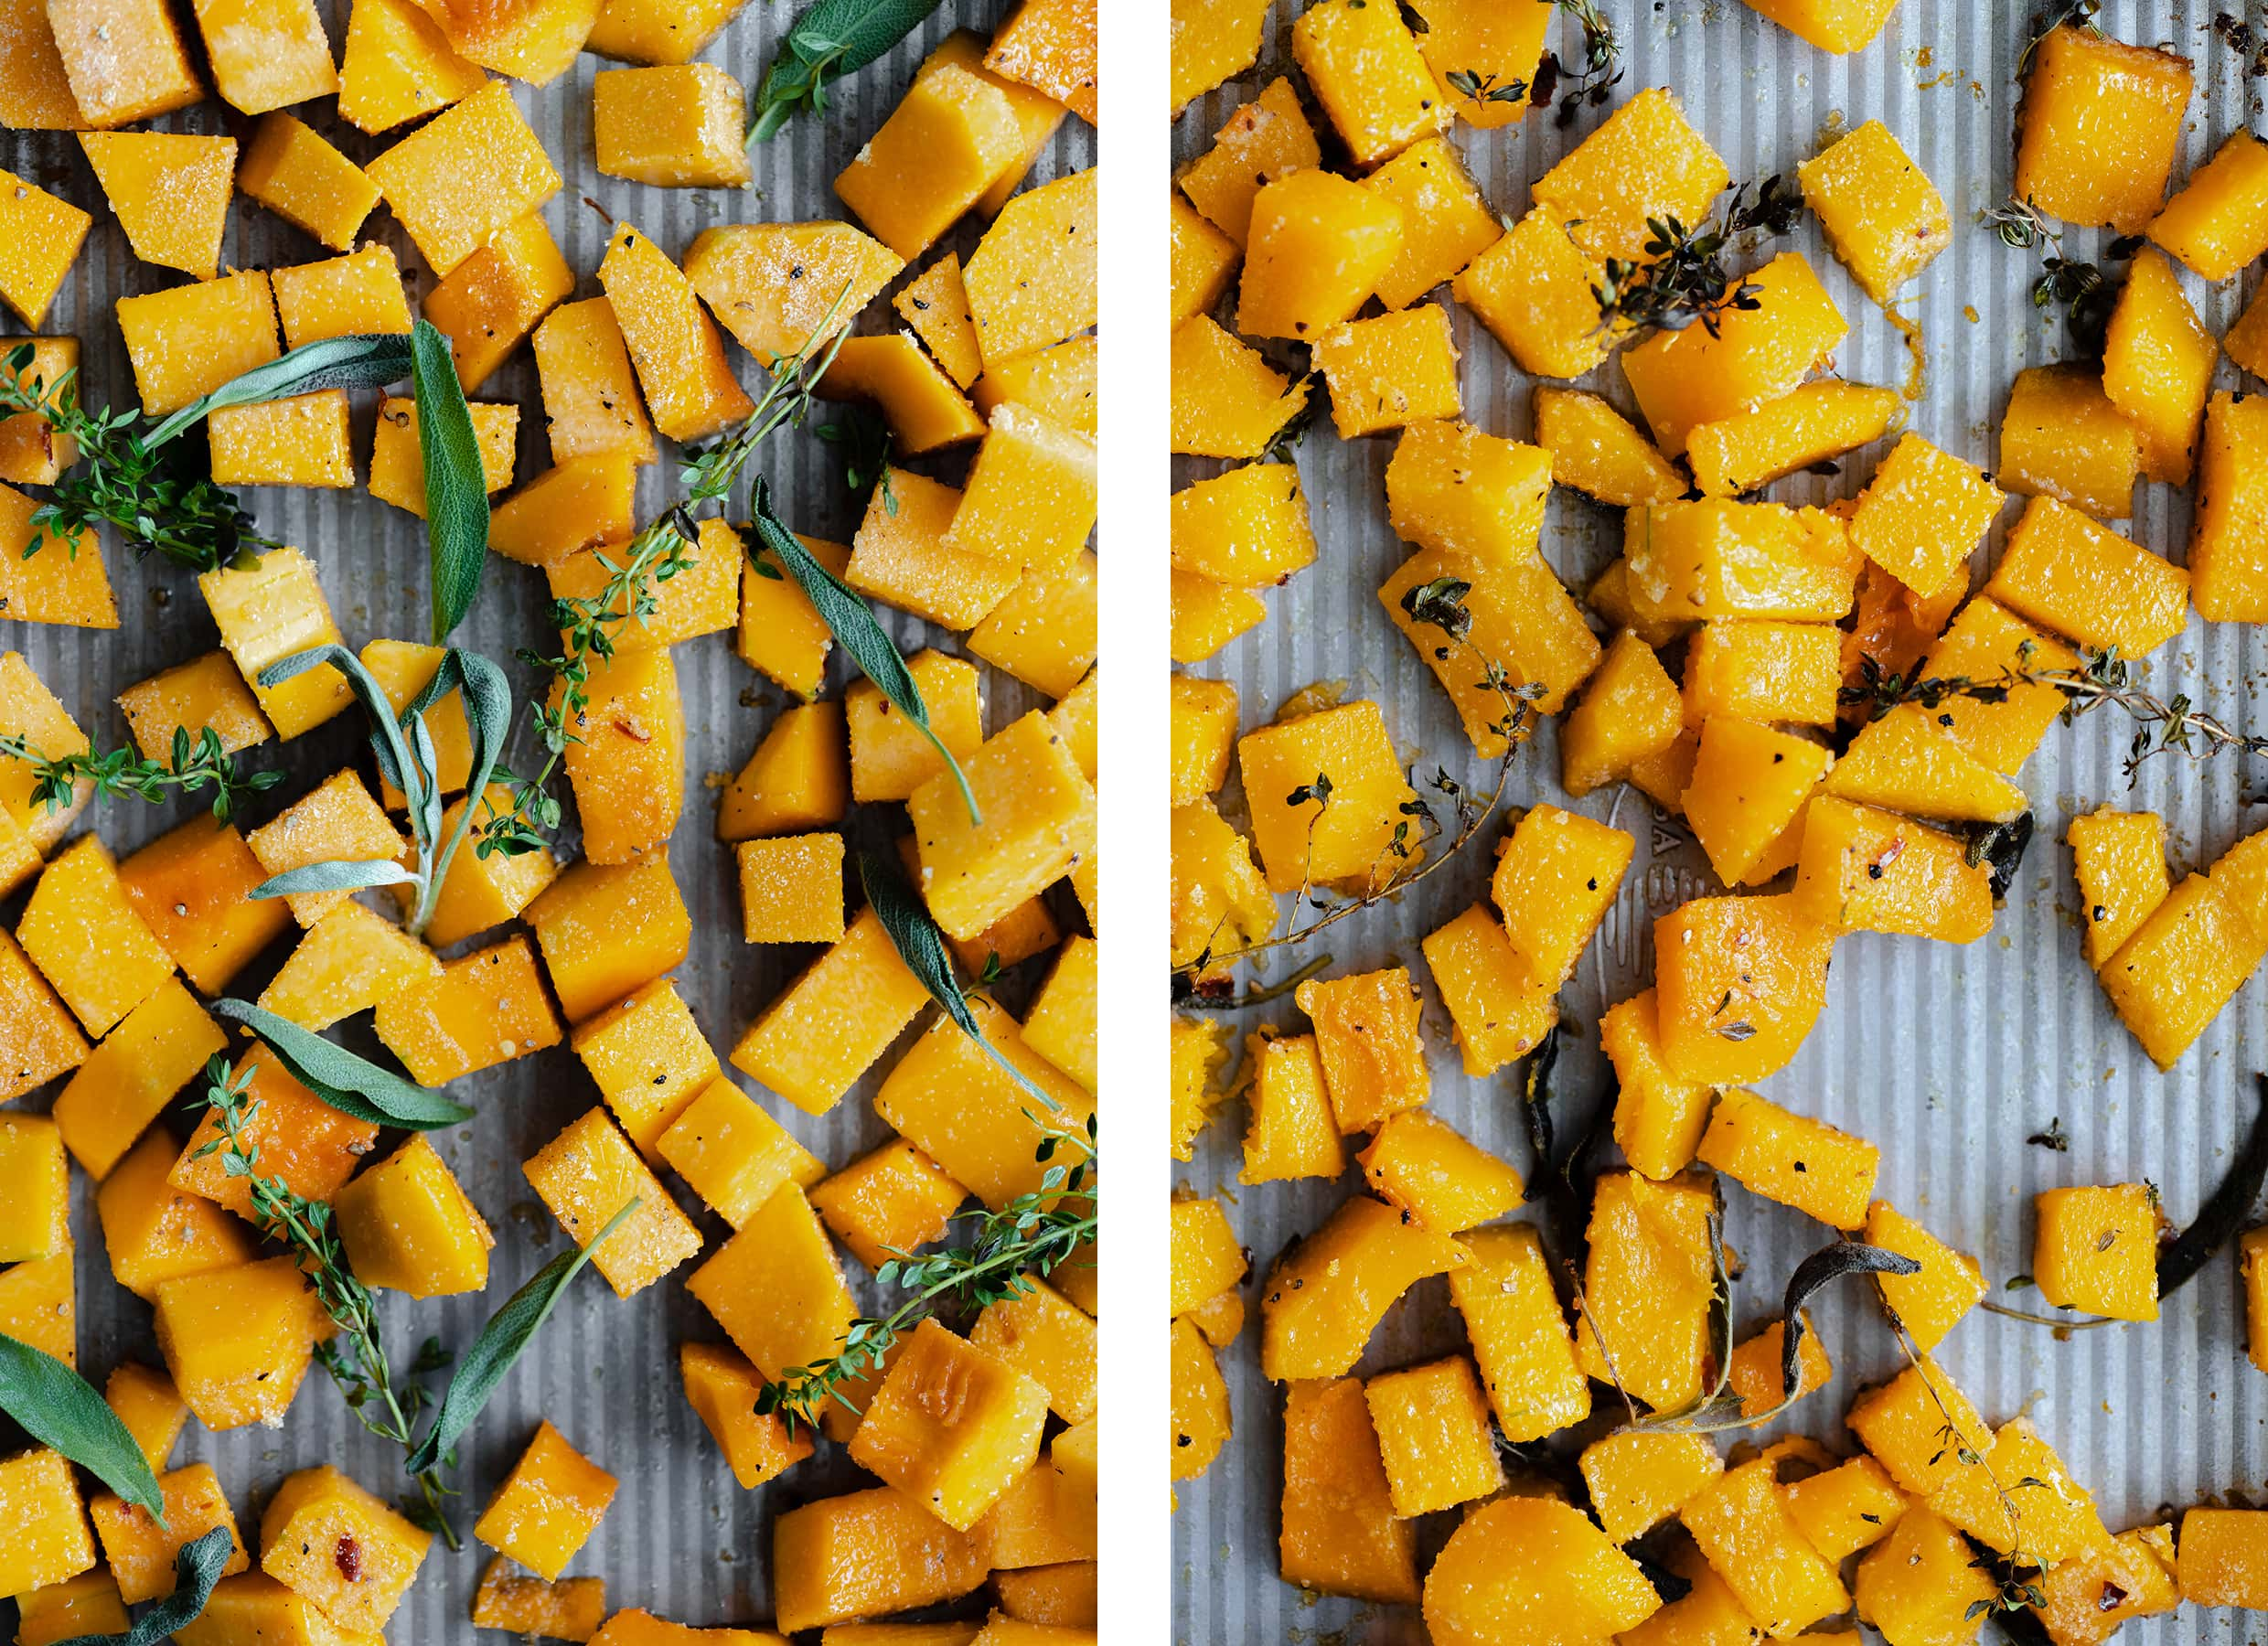 Butternut squash on a pan before and after roasting